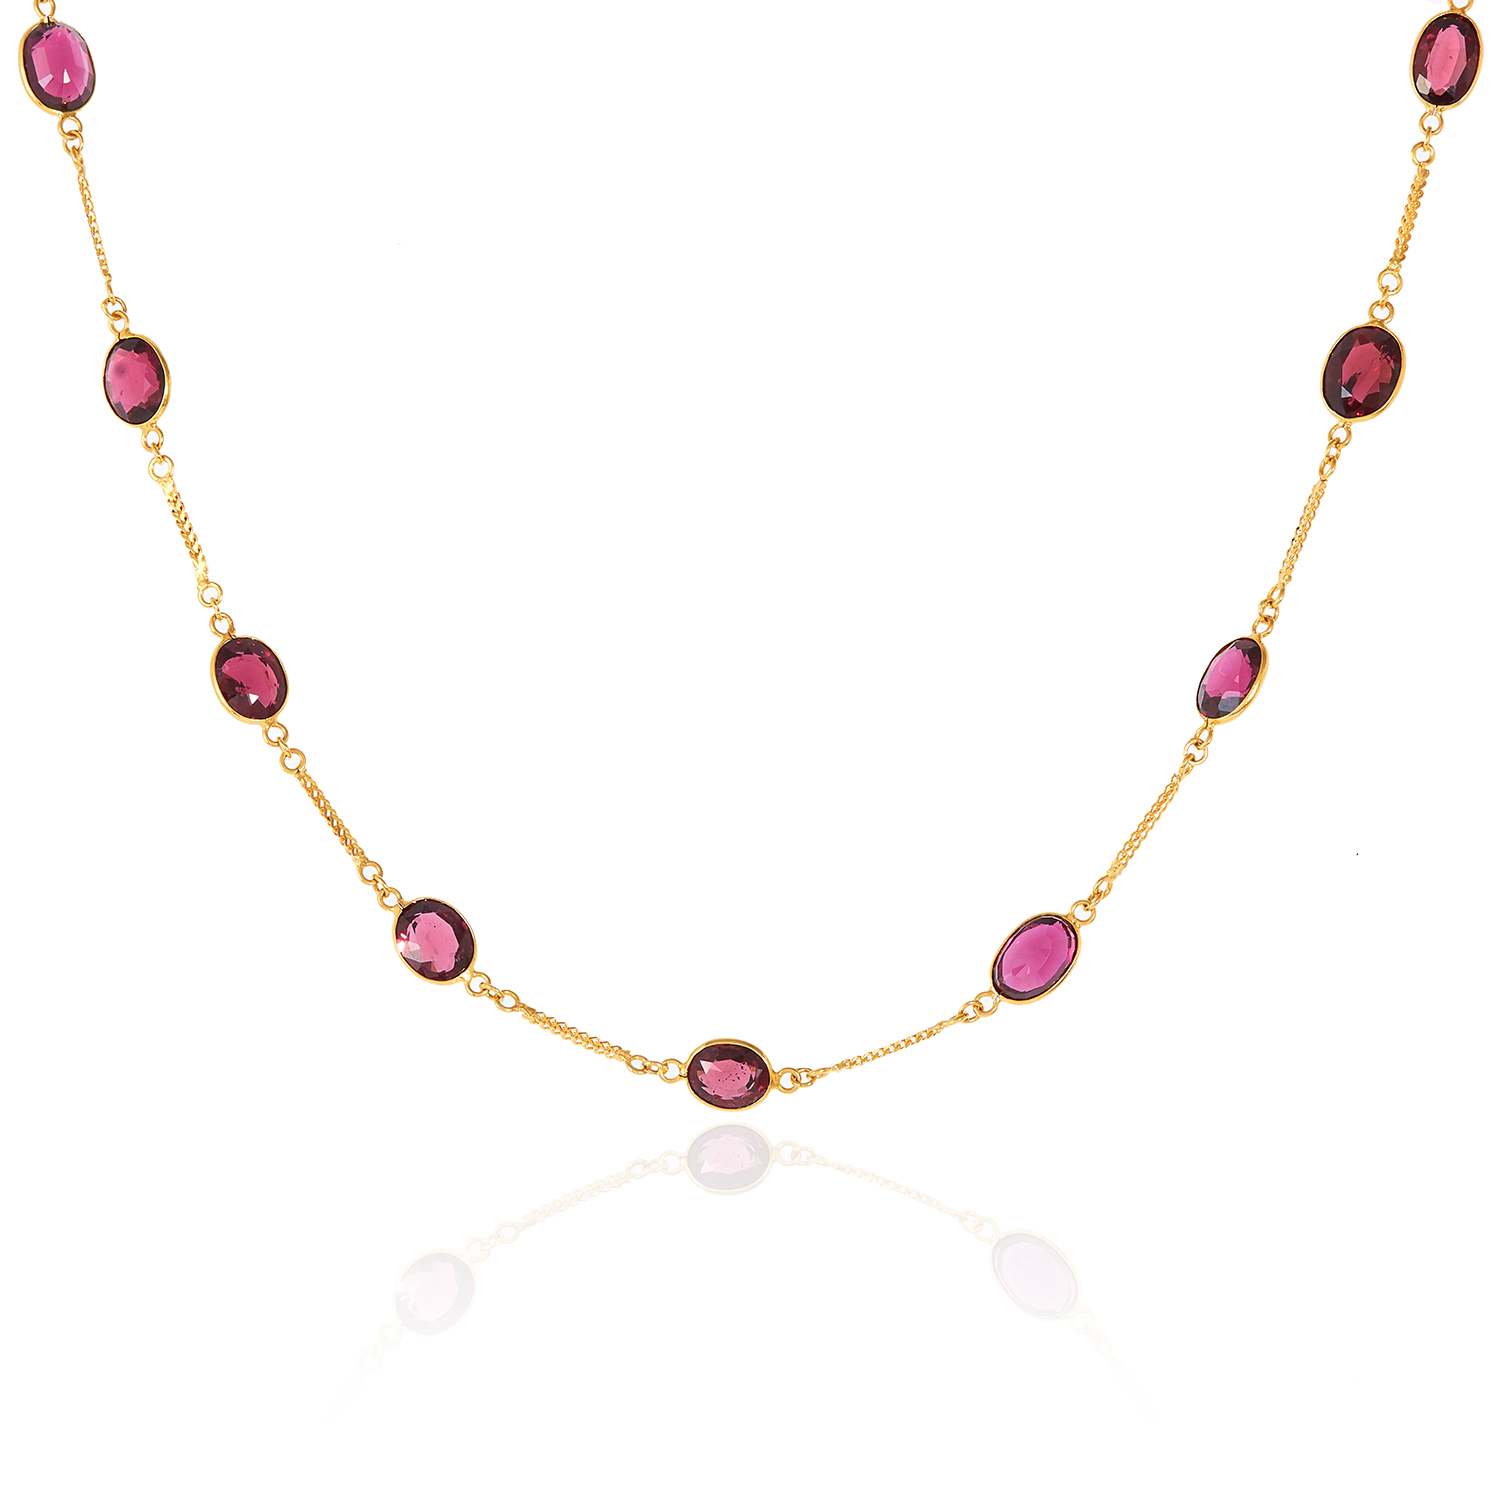 A GARNET NECKLACE in 14ct yellow gold, comprising of a single row of twenty-two oval cut garnets,